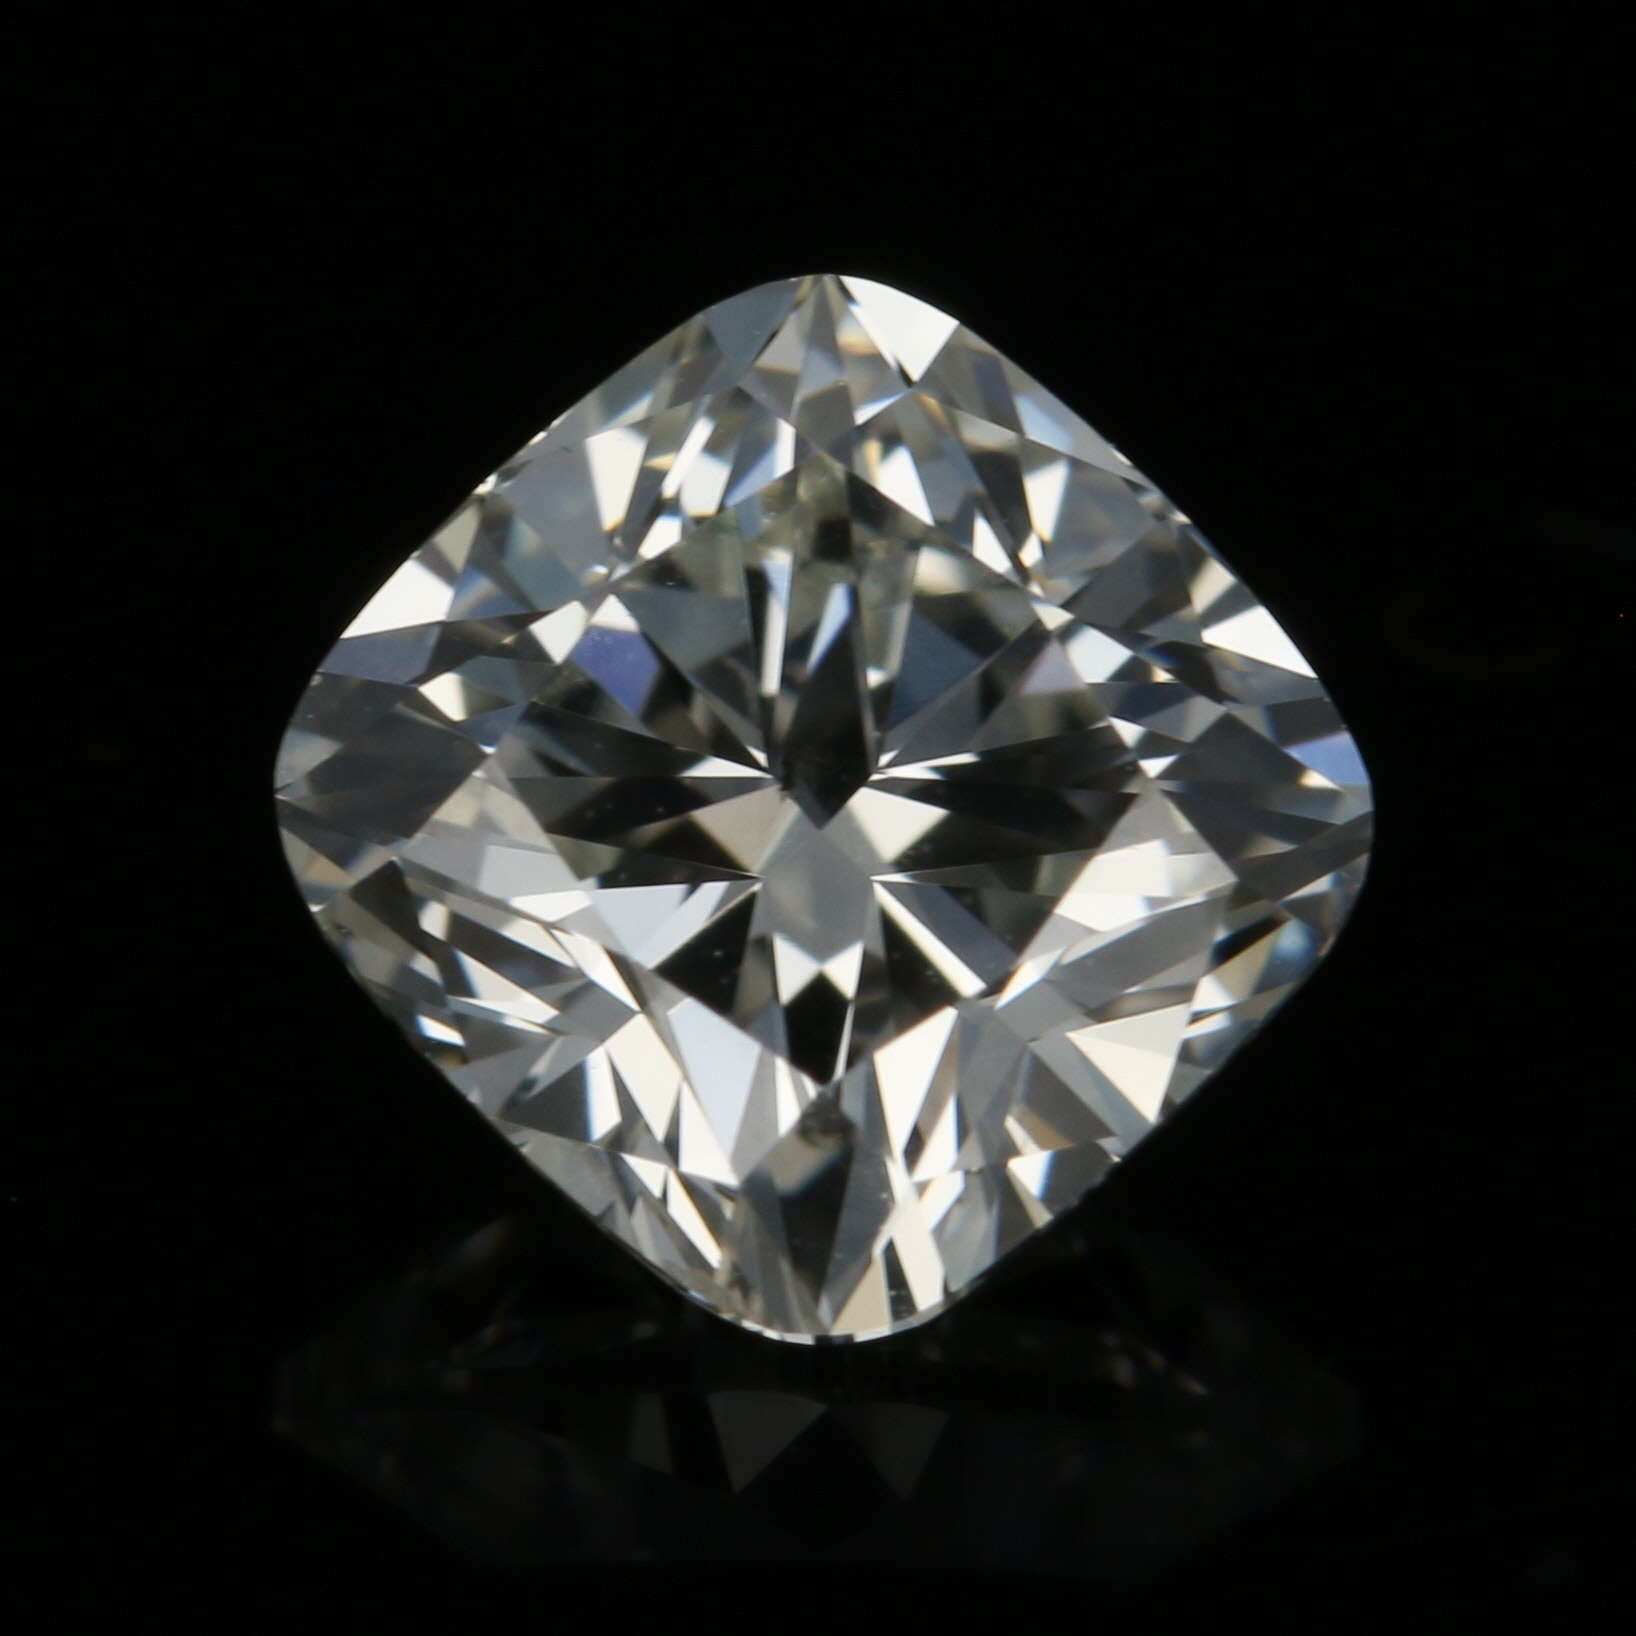 Details About 1 00ct Cushion Cut Diamond Gia Loose Solitaire